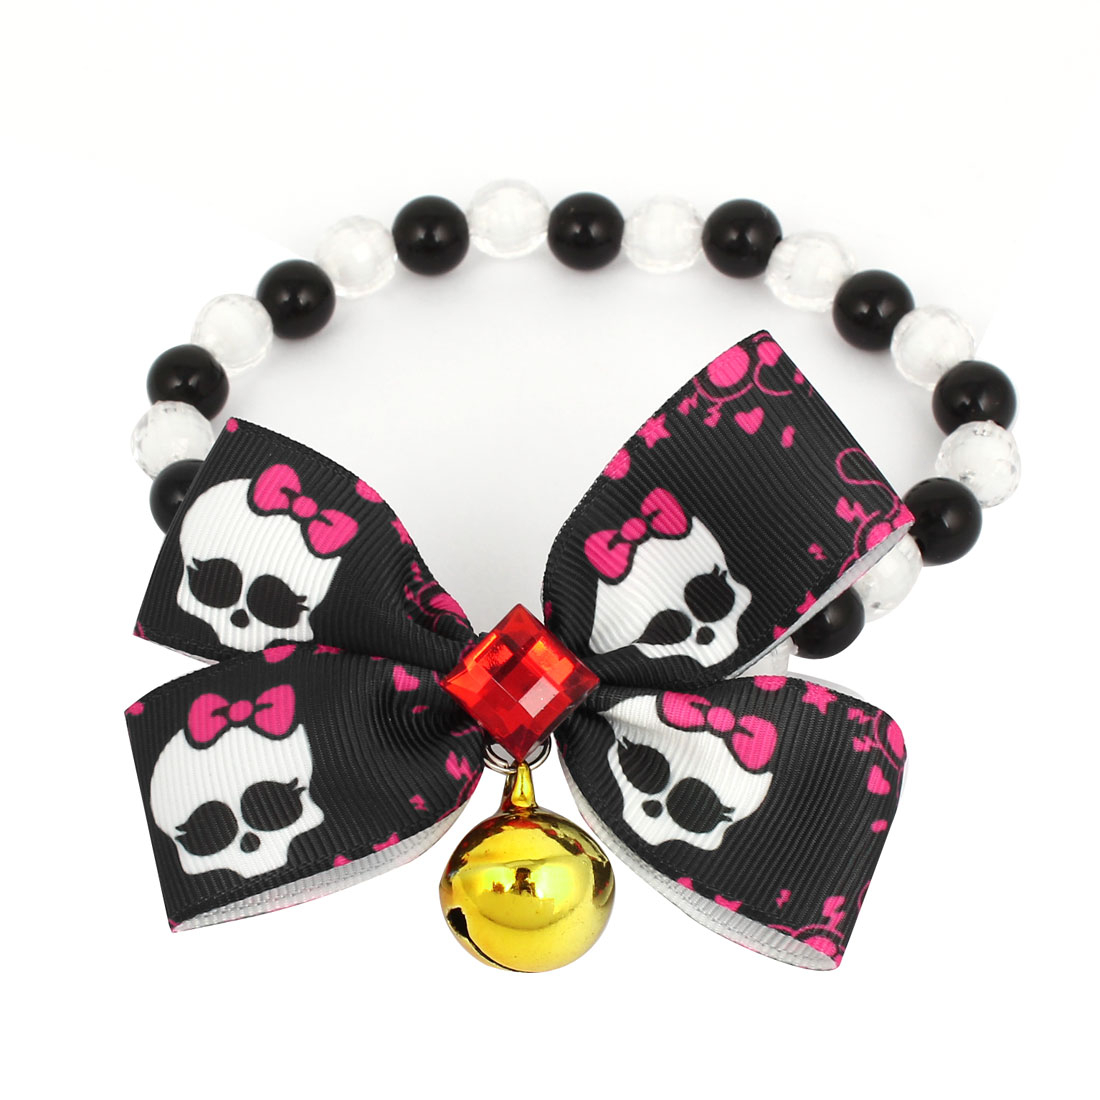 Metal Bell Pendant Bowtie Accent Pet Dog Plastic Beads Collar Necklace Black White S